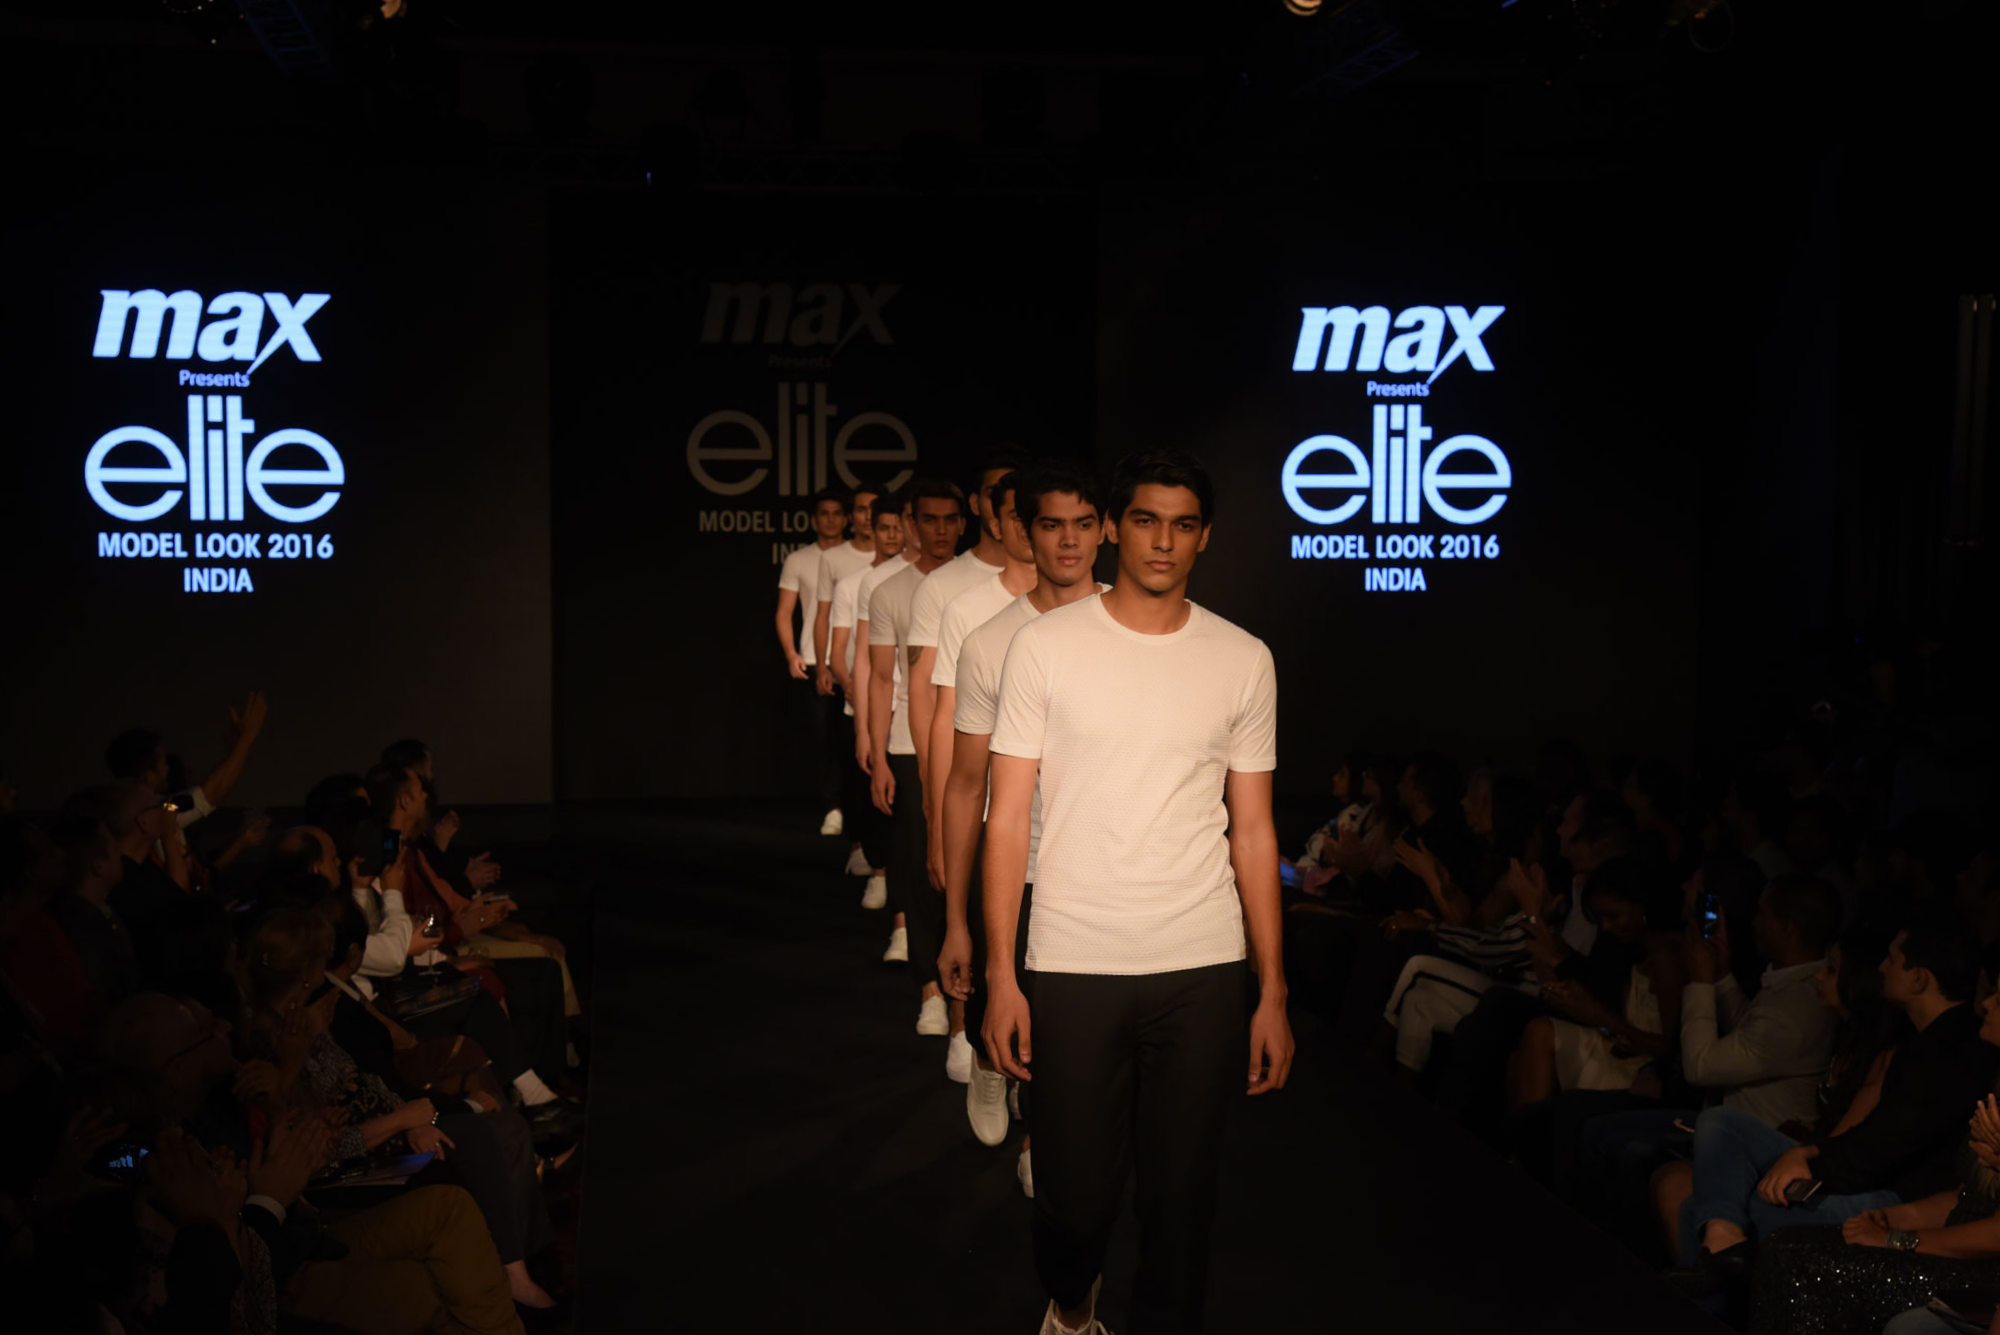 max-fashion-elite-model-look-2